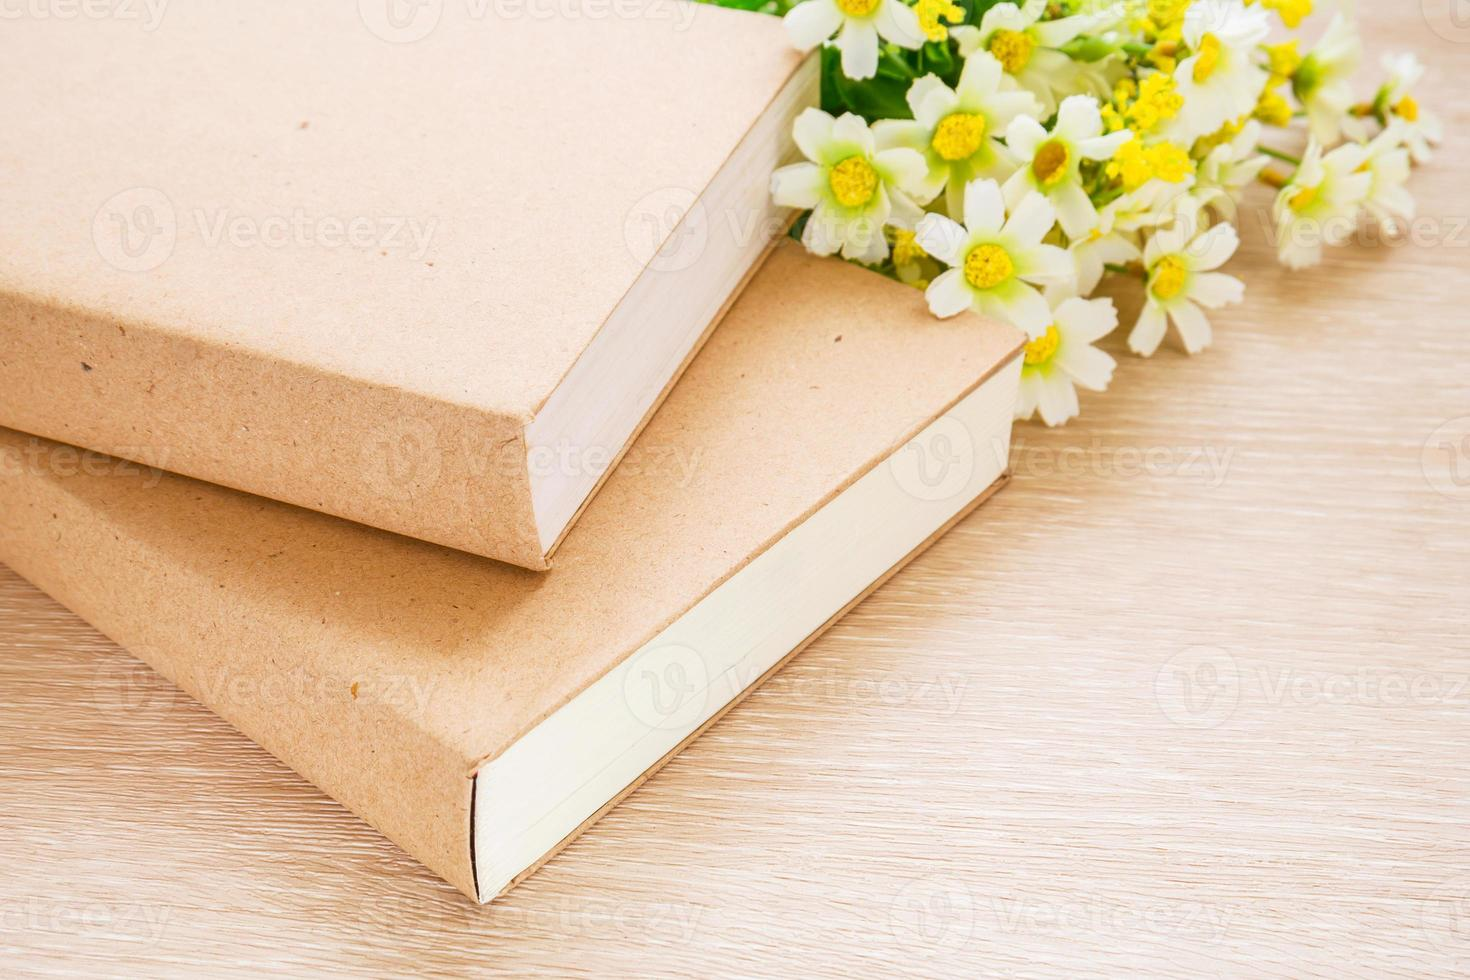 Books and daisy flower photo